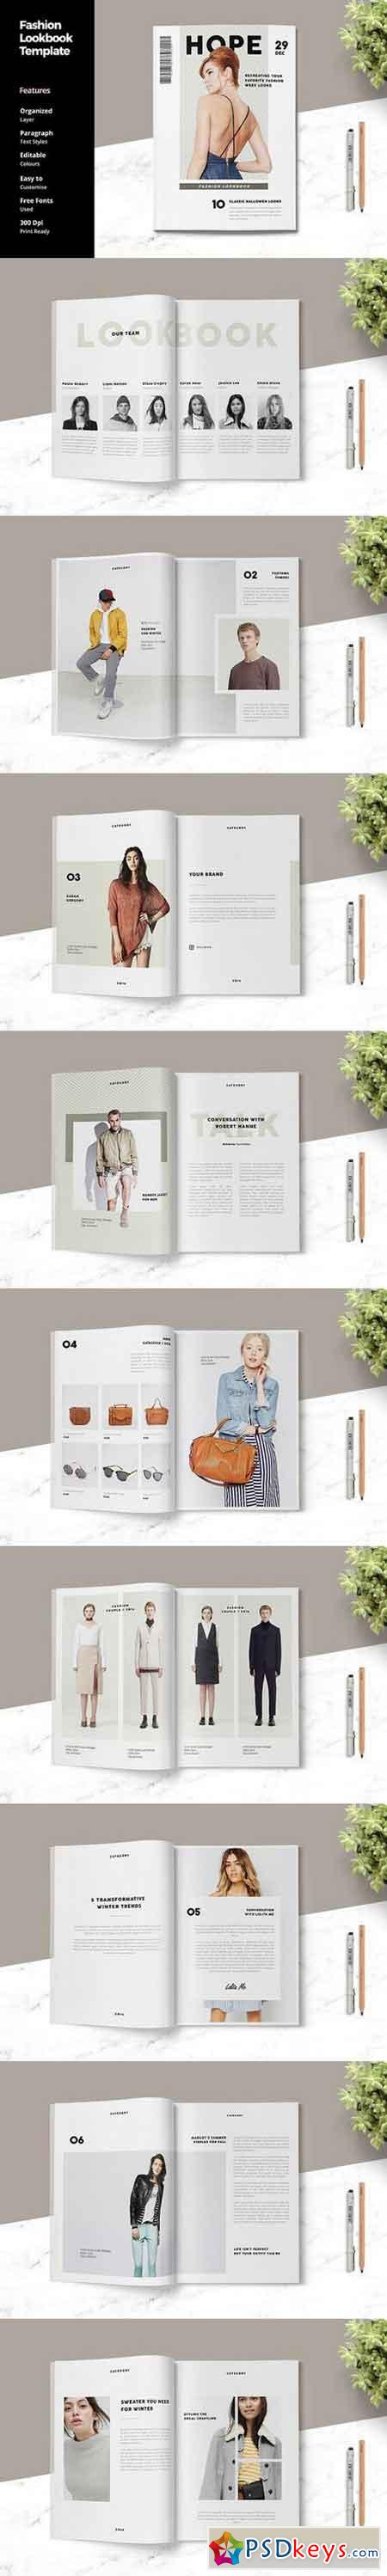 fashion lookbook template 1409304 free download photoshop vector